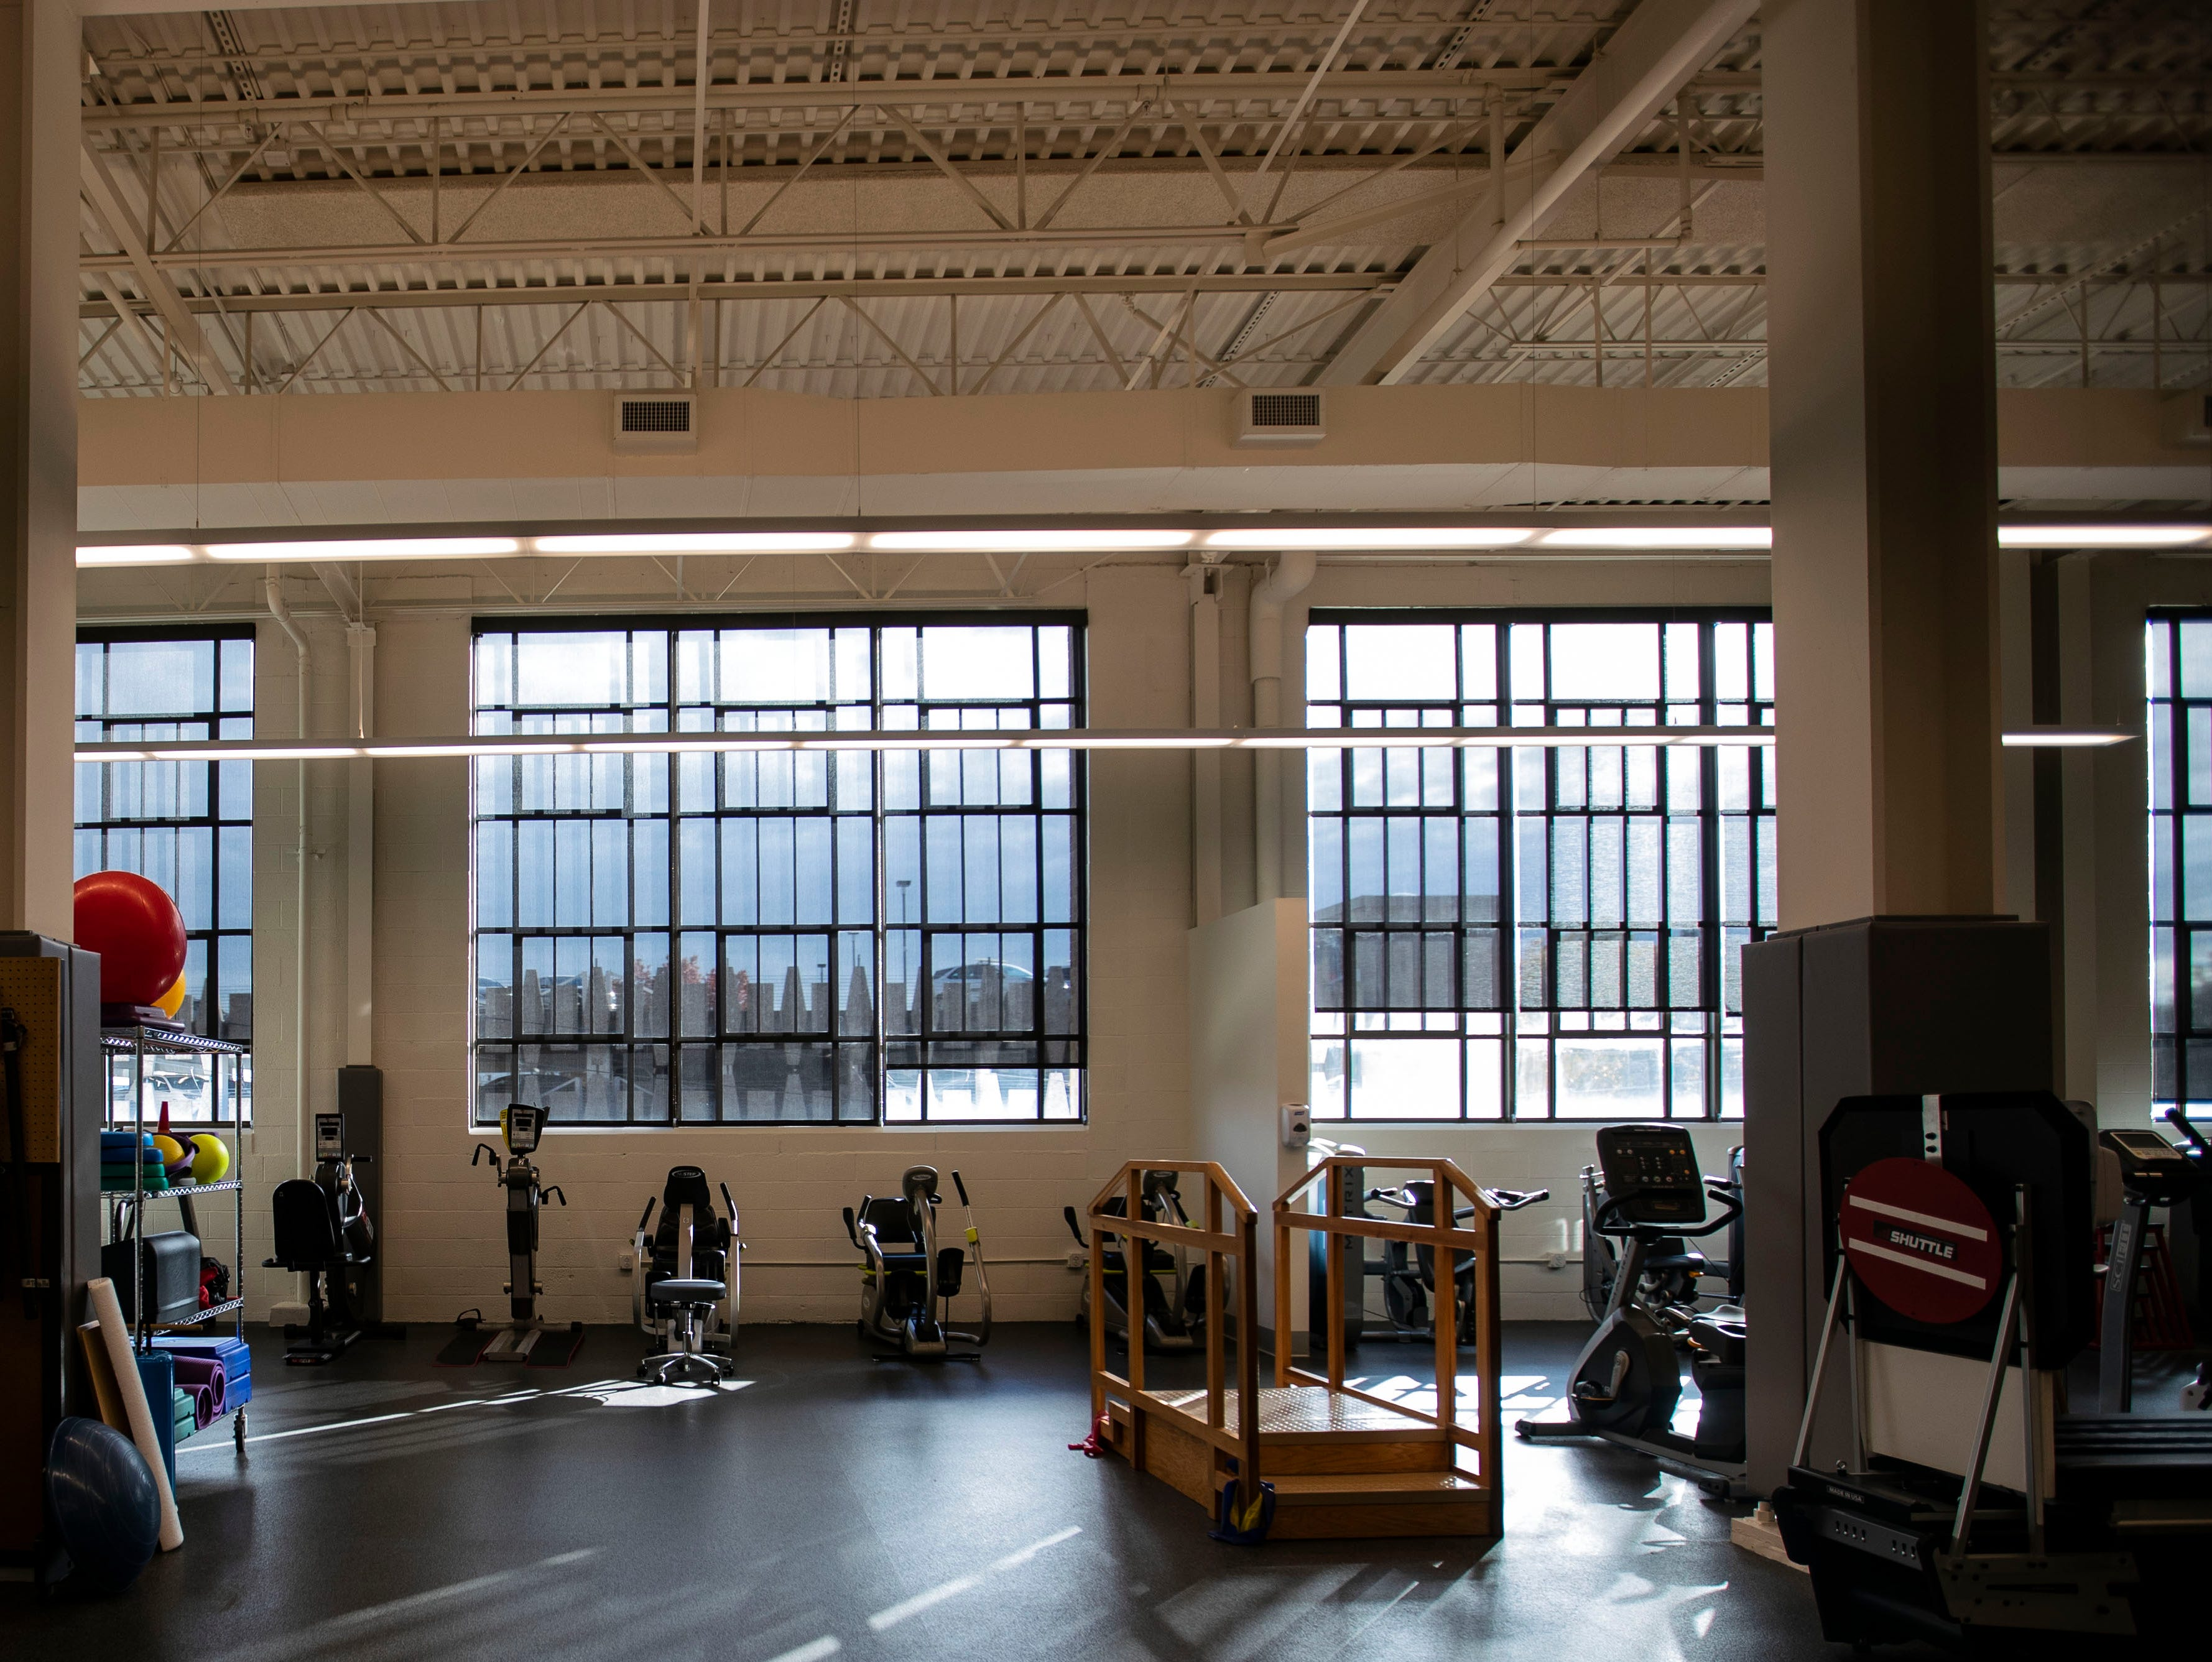 Church Health, provides medical services to low-income, uninsured Memphians, offers free or cheap yoga, mediation and Pilates classes for anyone who visits Crosstown.